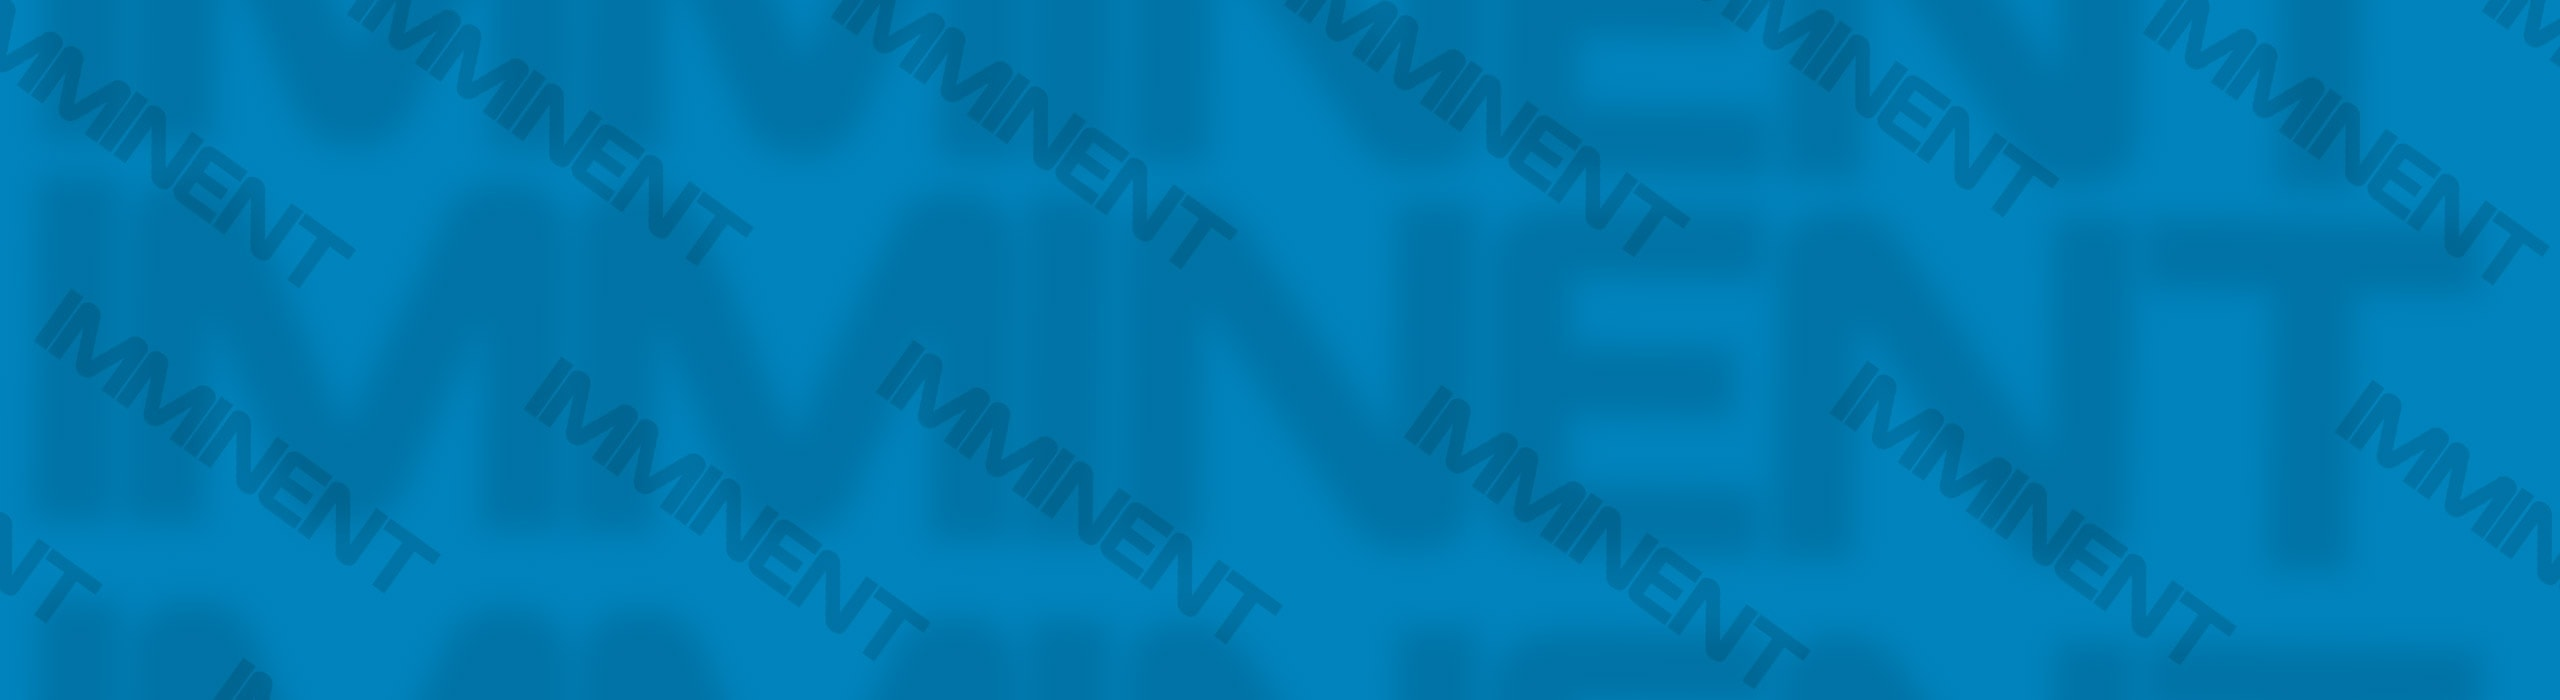 Imminent - natie-imminent-logo-bg - Natie Branding Agency